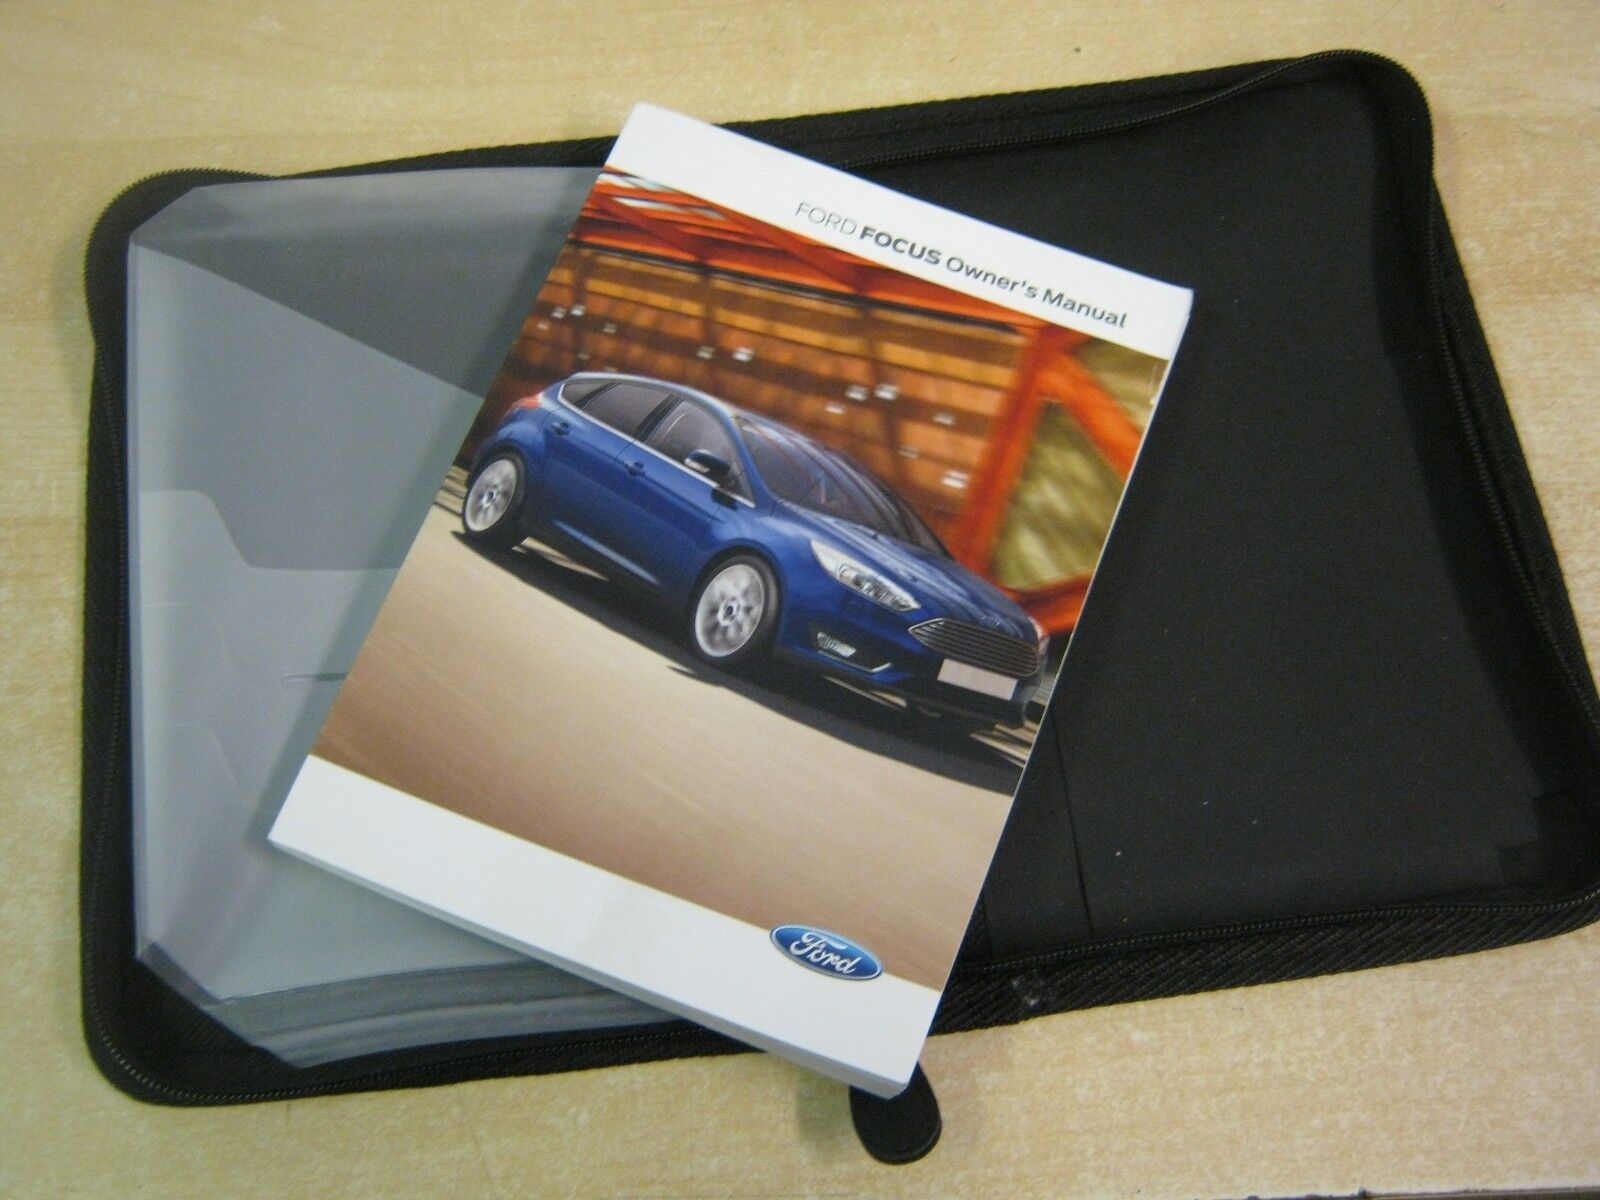 Ford Focus Owners Manual -Owners Handbook 2013-2016 Covers Audio Book Nom8  1 of 1 See More